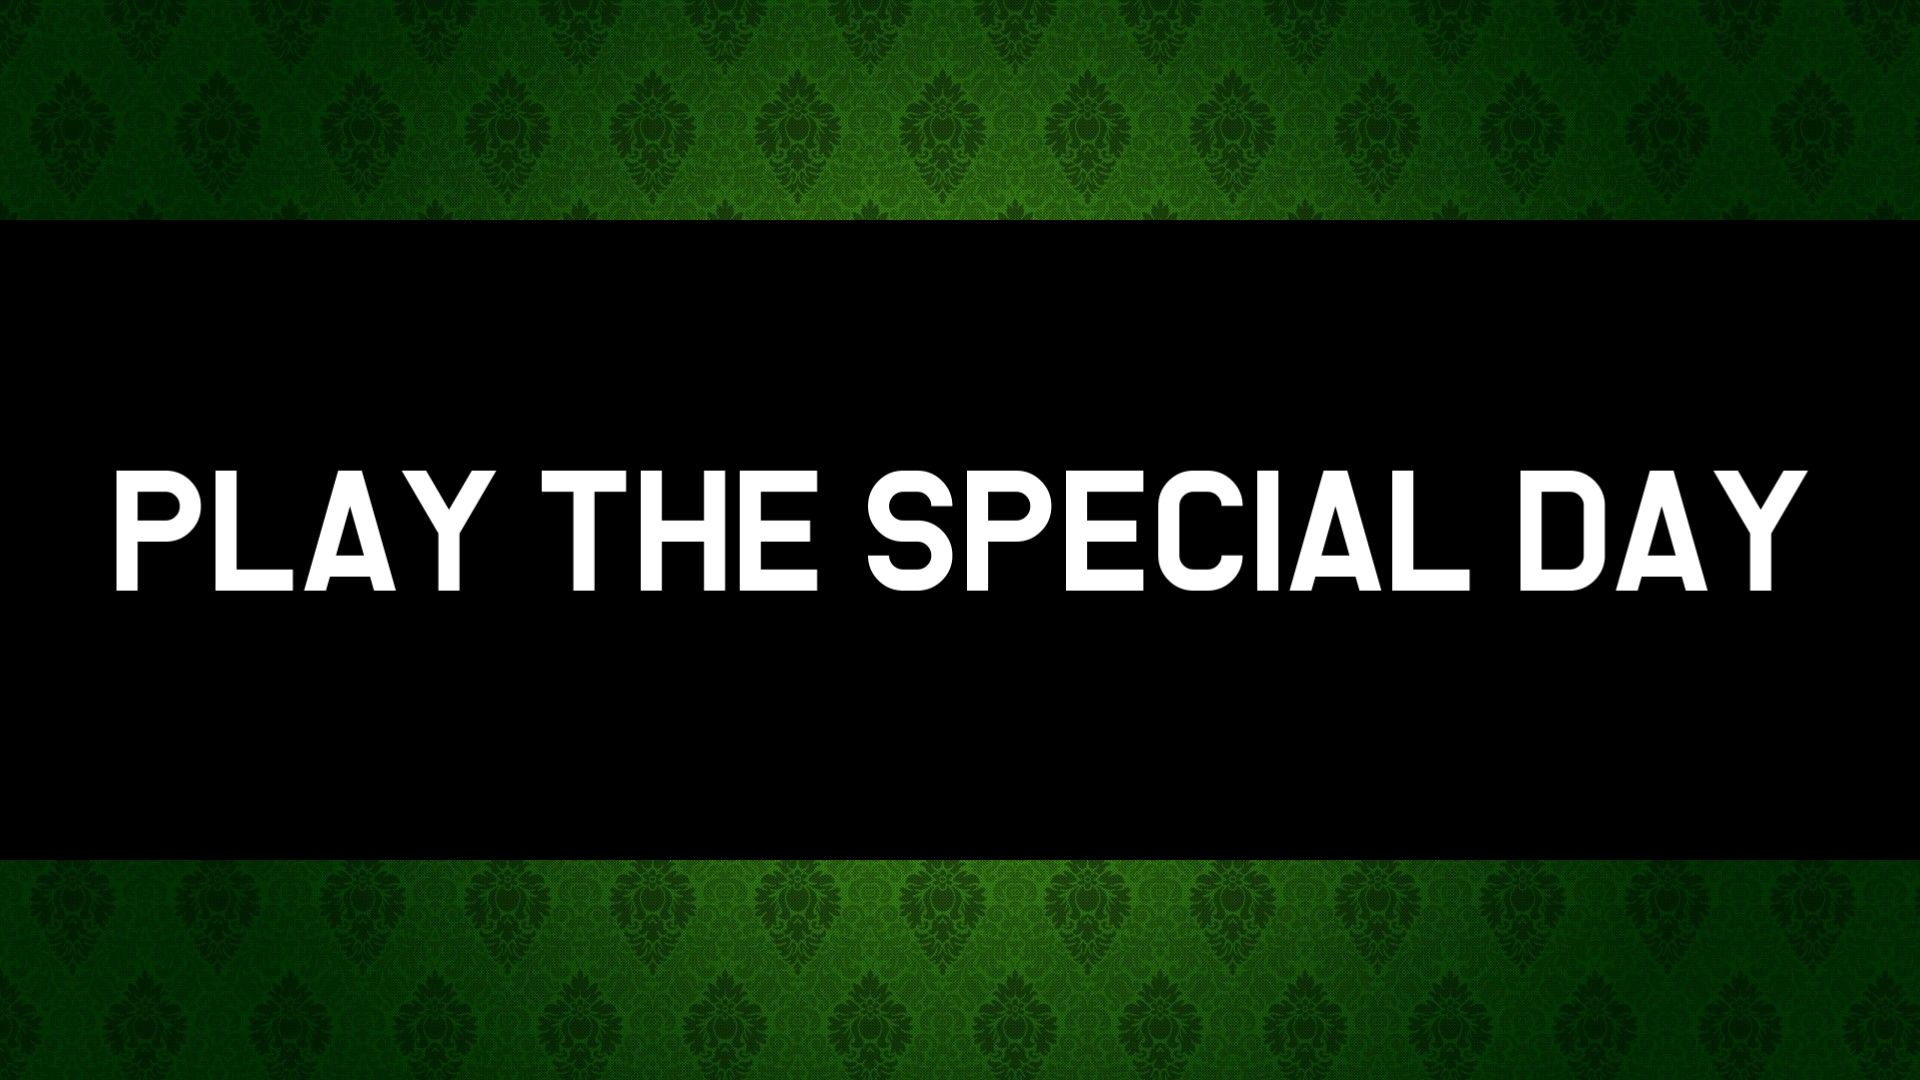 401501787_Playthespecialday.png.b7433a93e0cc771fd8b256523aa96273.png